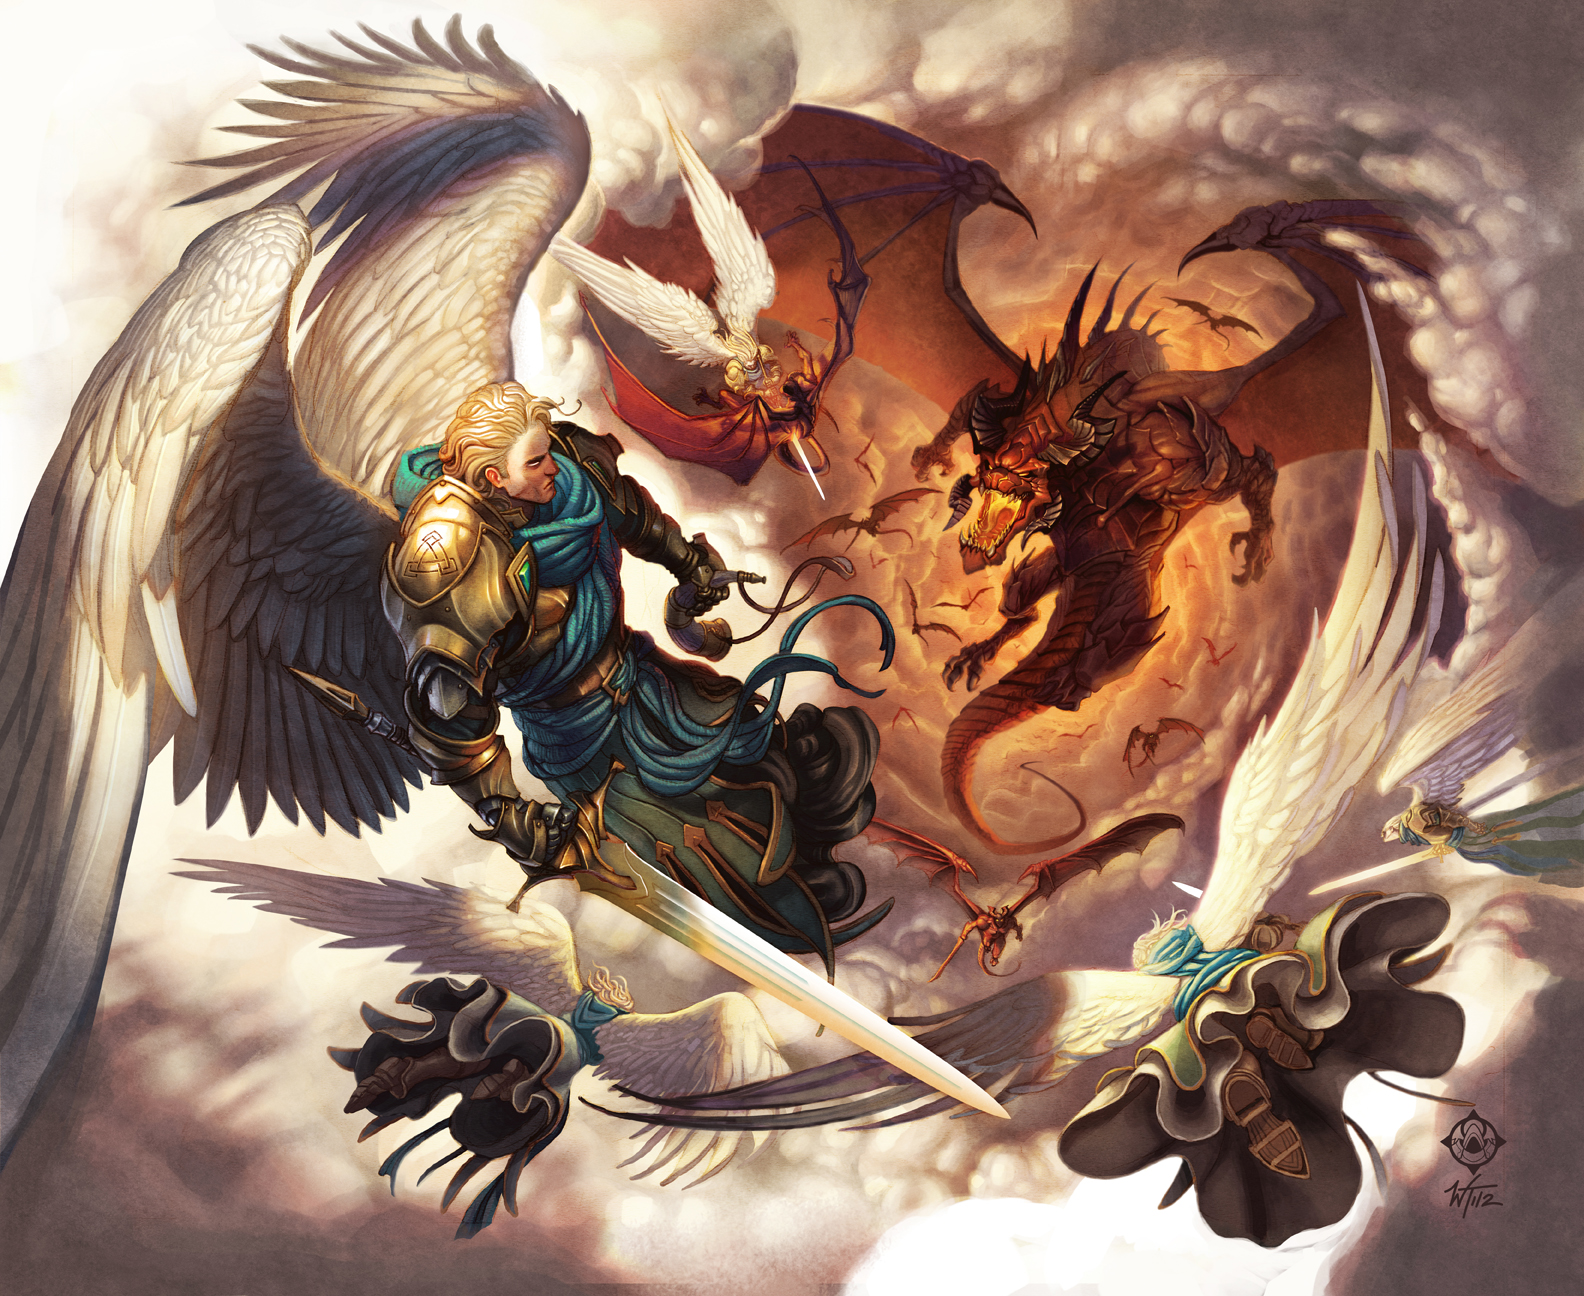 demons and angels fighting - photo #14